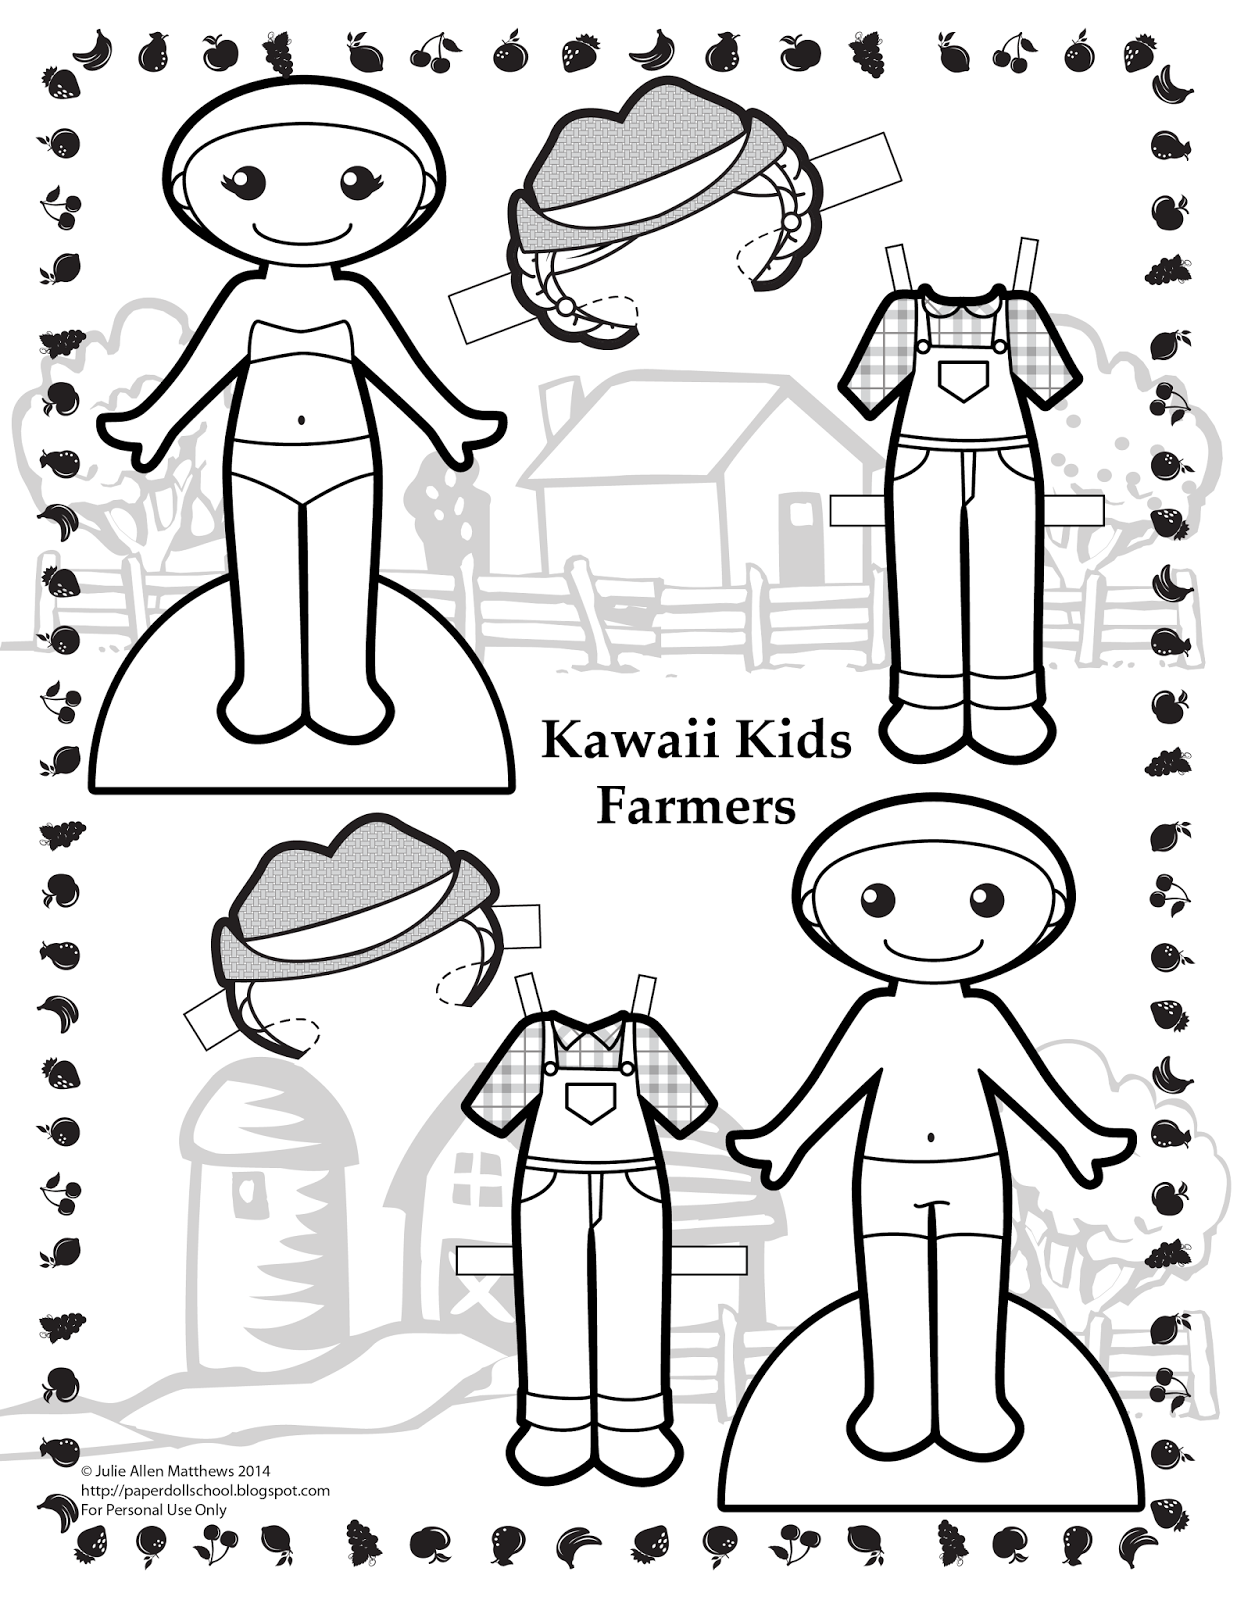 Paper Doll School Paper Doll Downloads